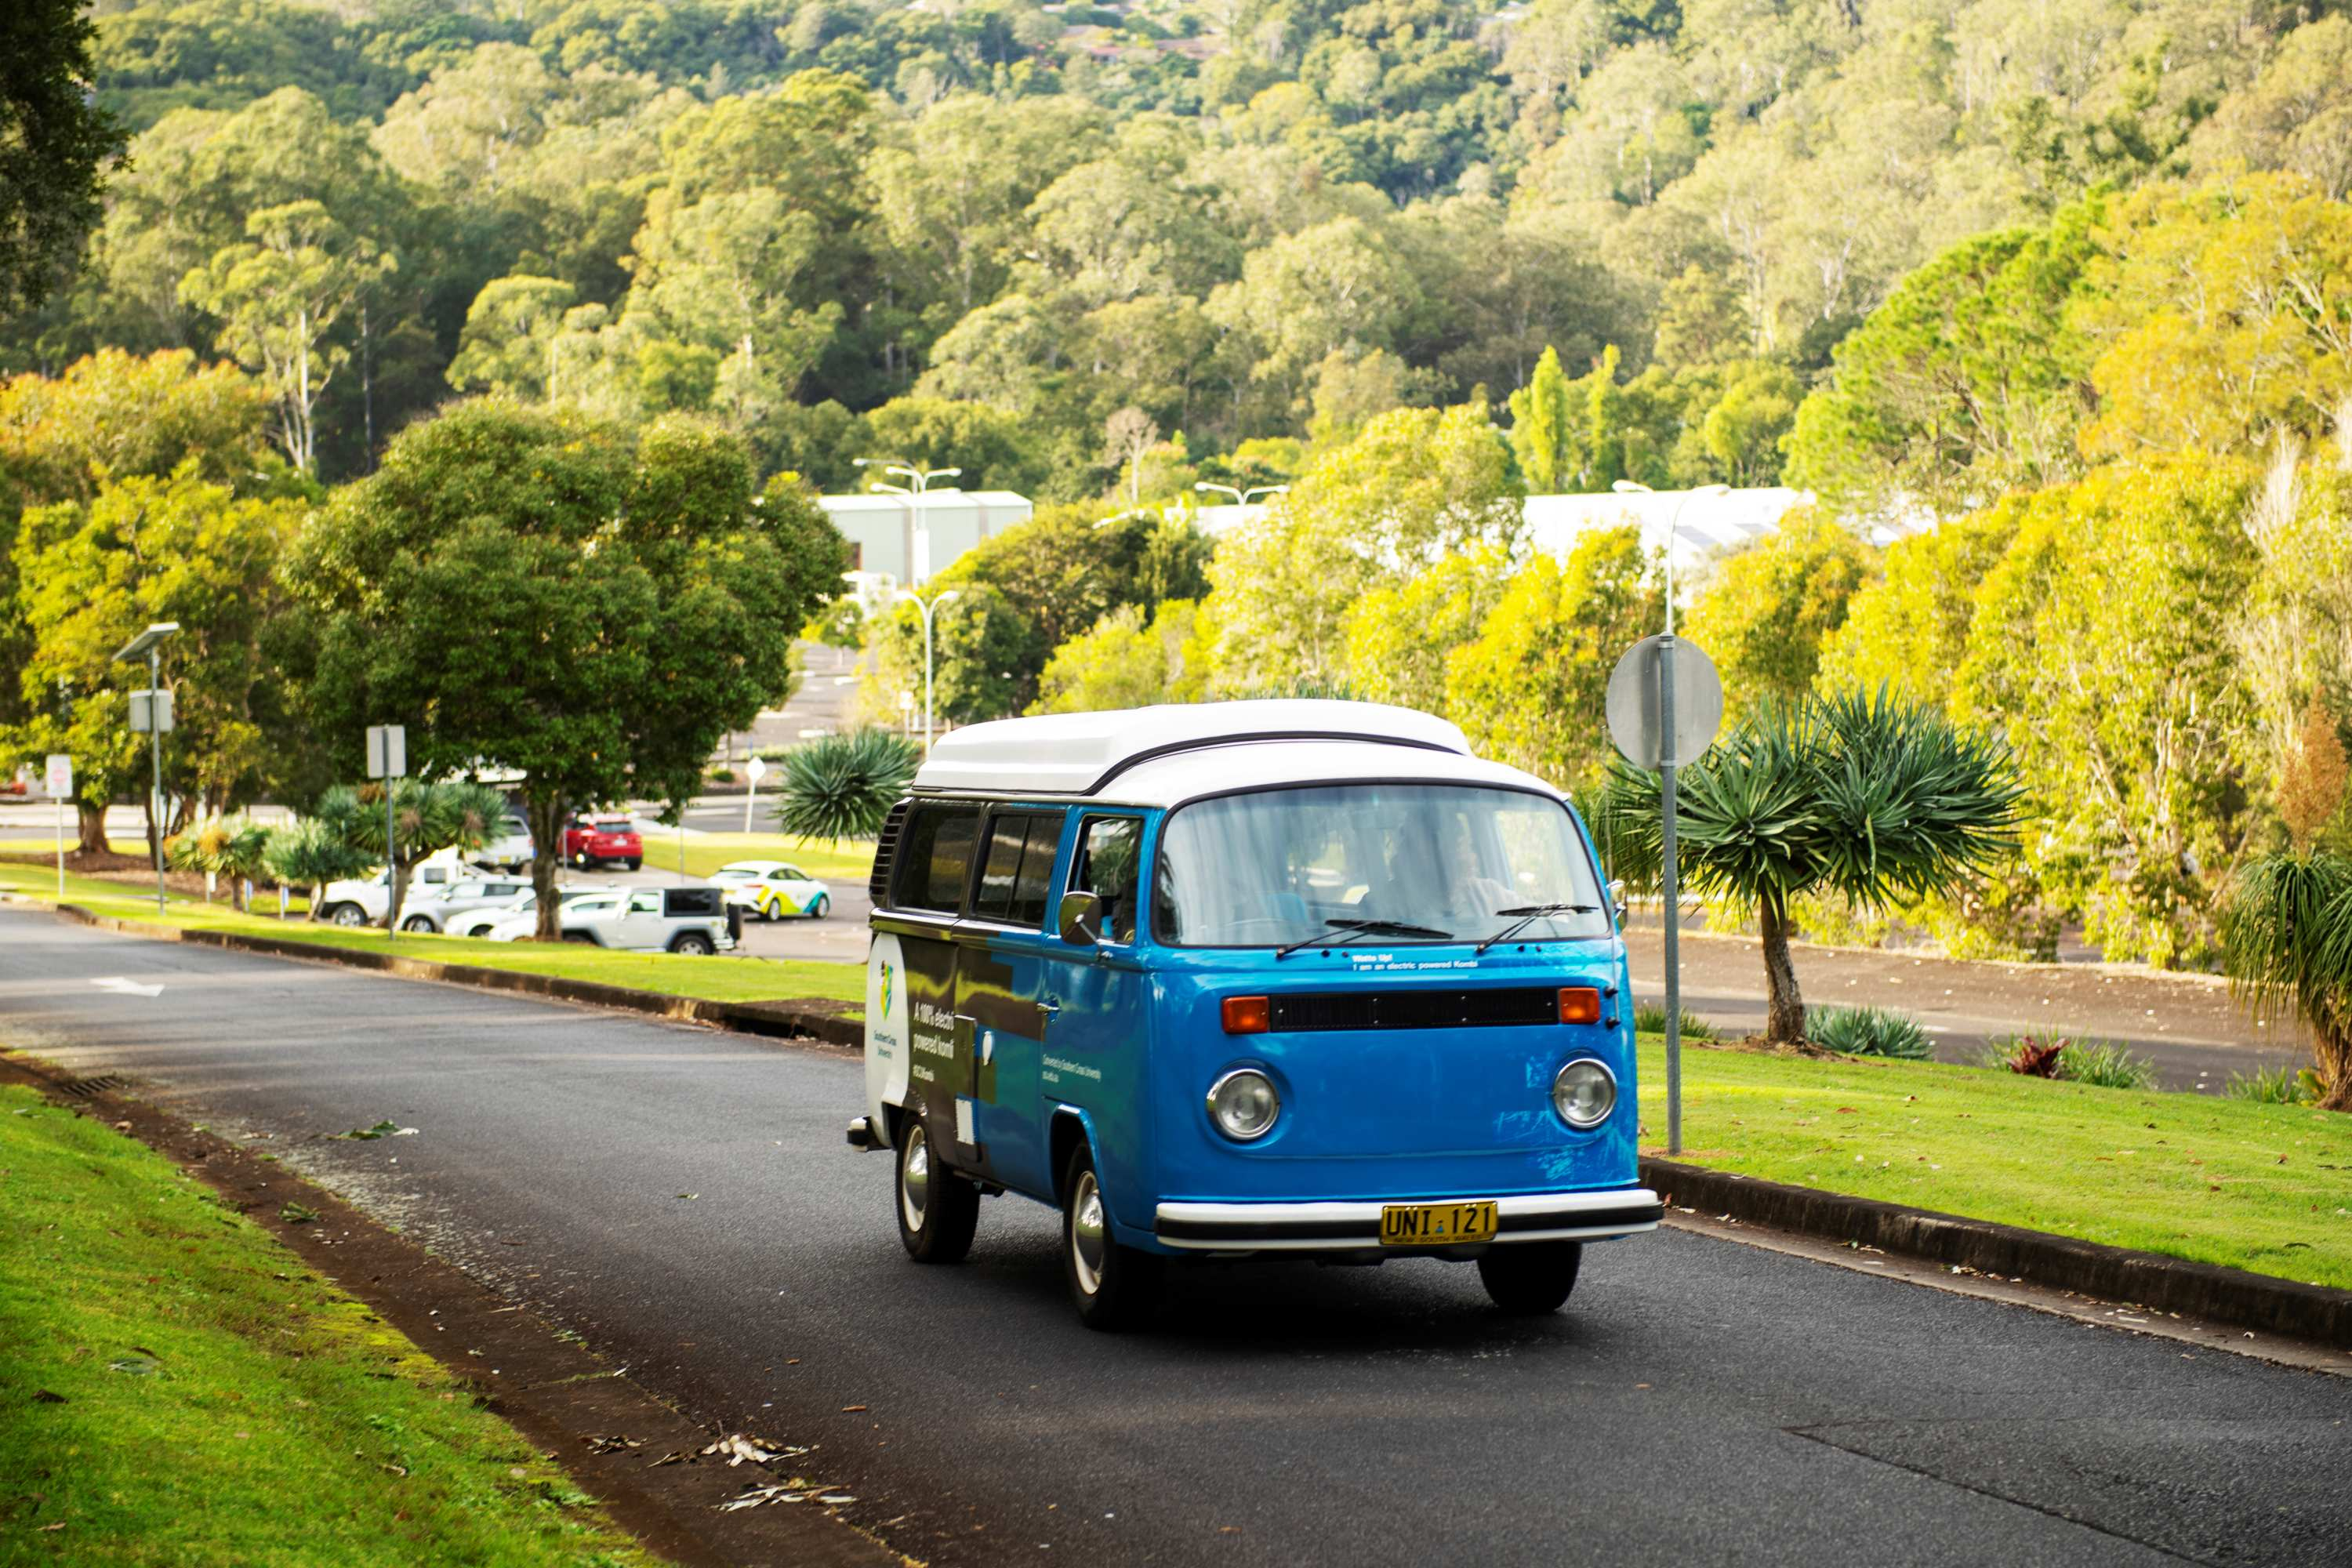 1974 Kombi van converted to electric drives on Lismore campus.